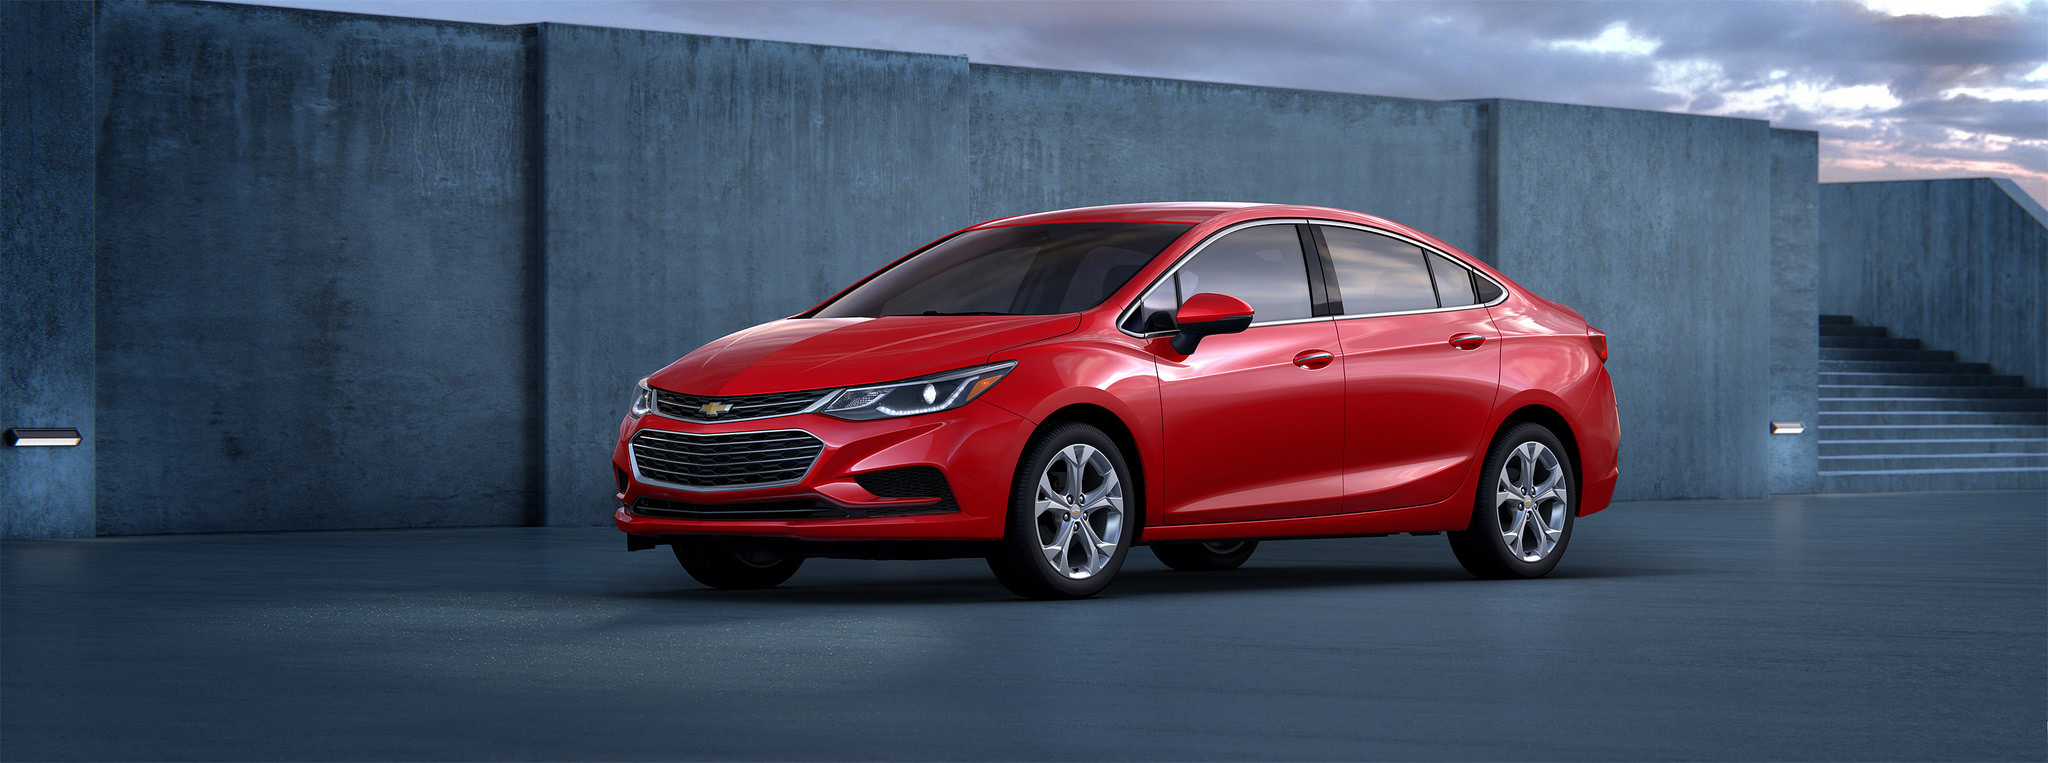 2016 Chevrolet Cruze at Carter Chevrolet in Okarche OK